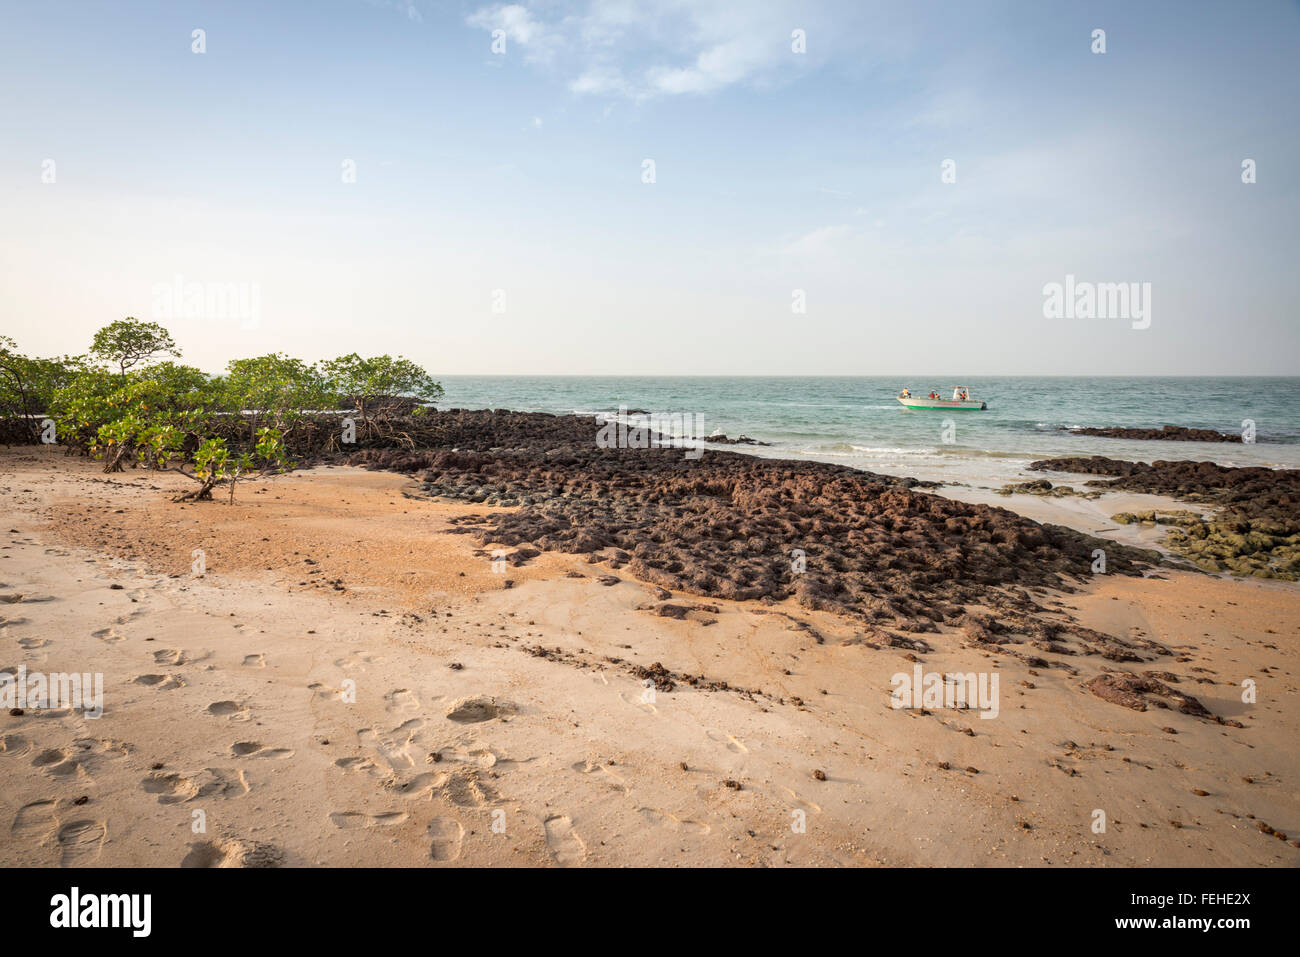 Mangroves growing on volcanic rock near the shore of the island Poilao in the Bijagos Islands of Guinea Bissau - Stock Image